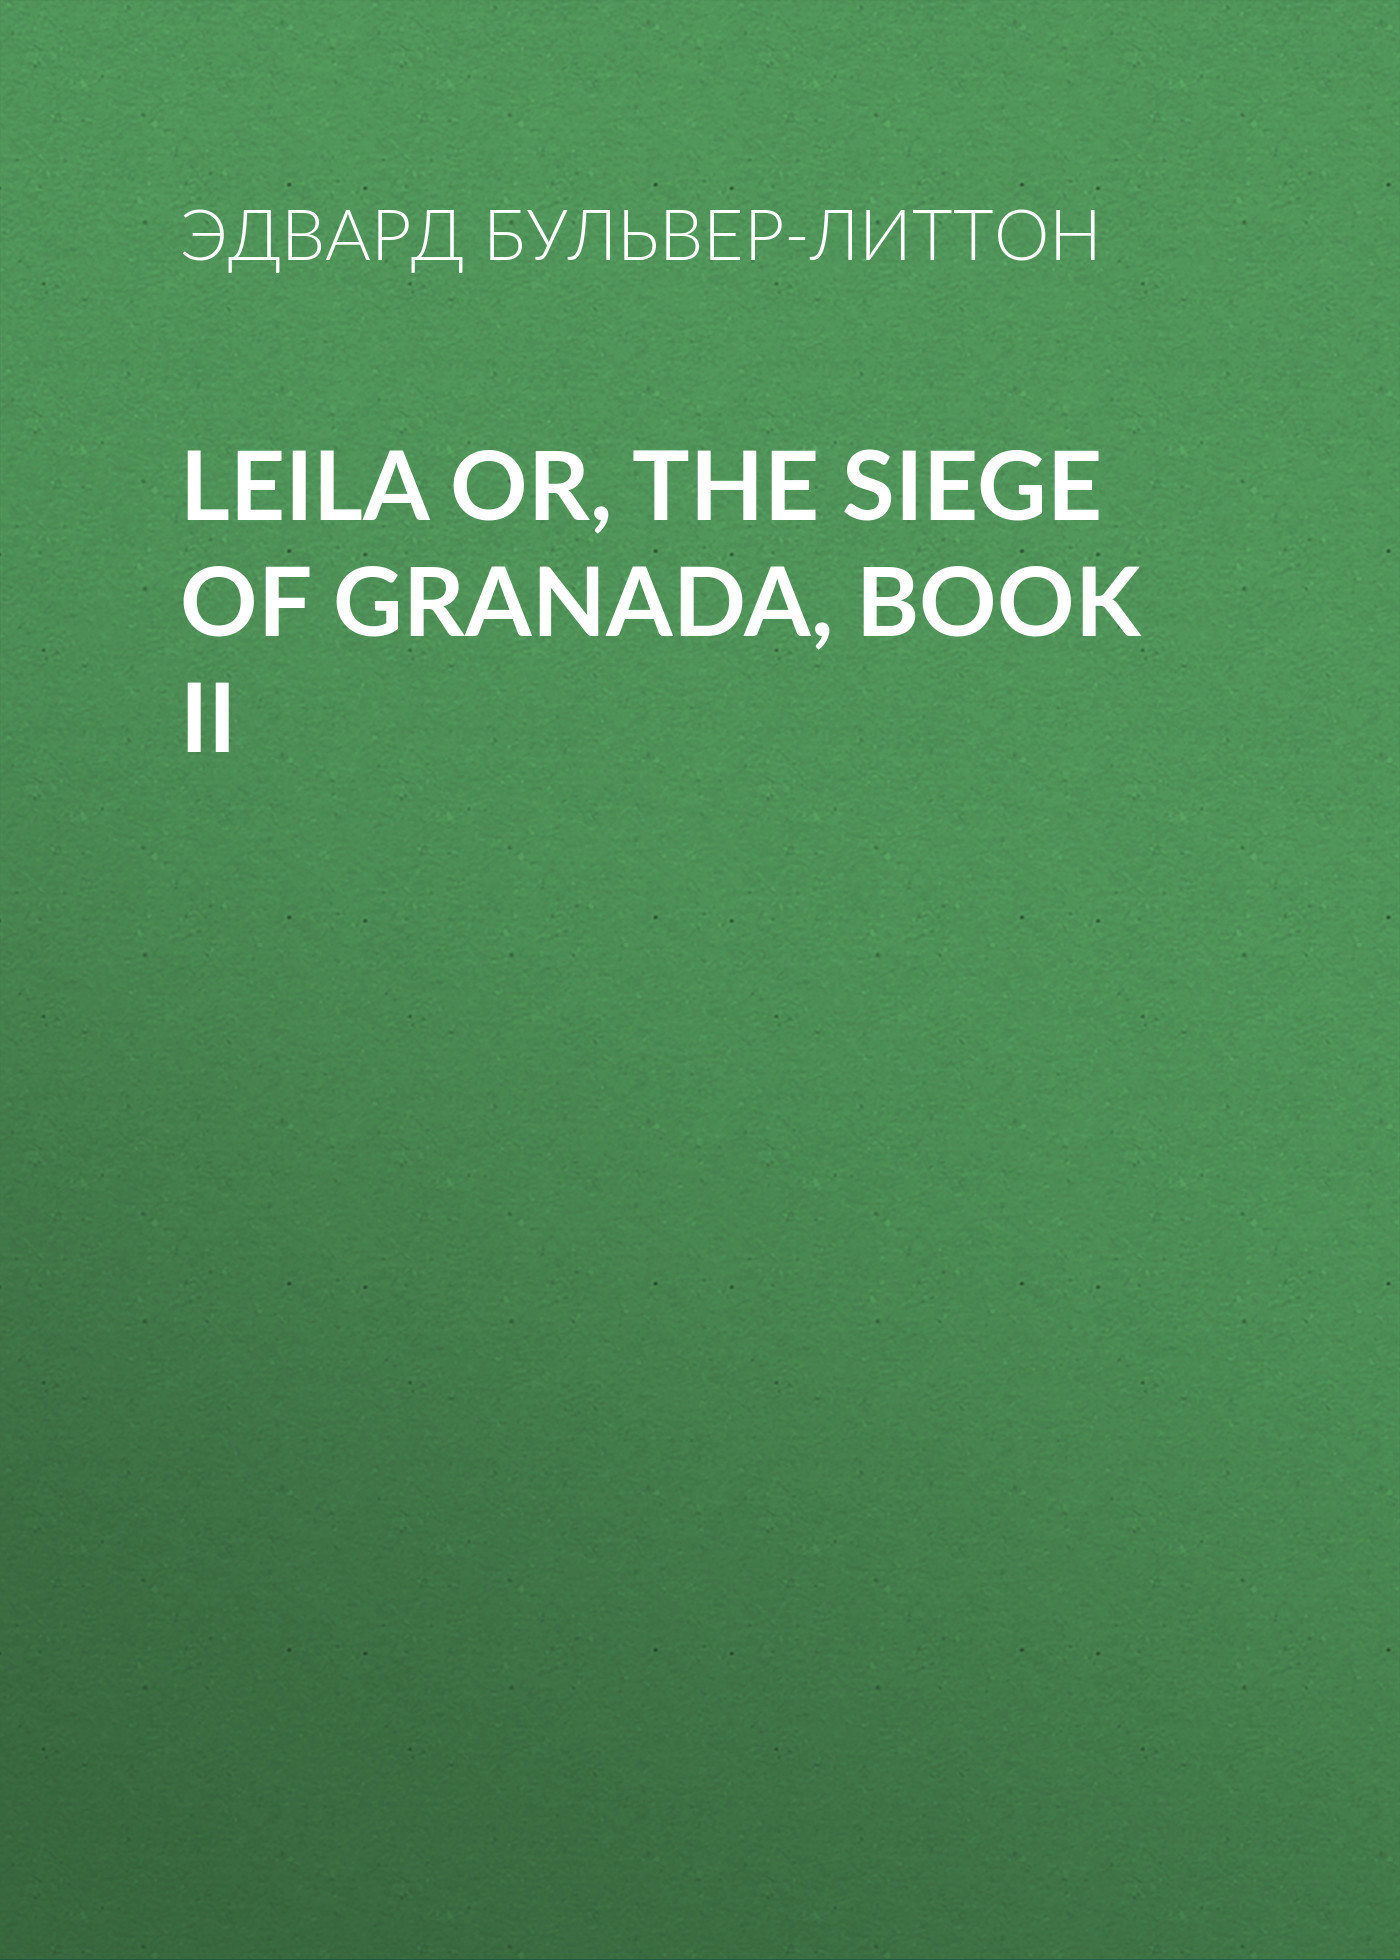 Эдвард Бульвер-Литтон Leila or, the Siege of Granada, Book II